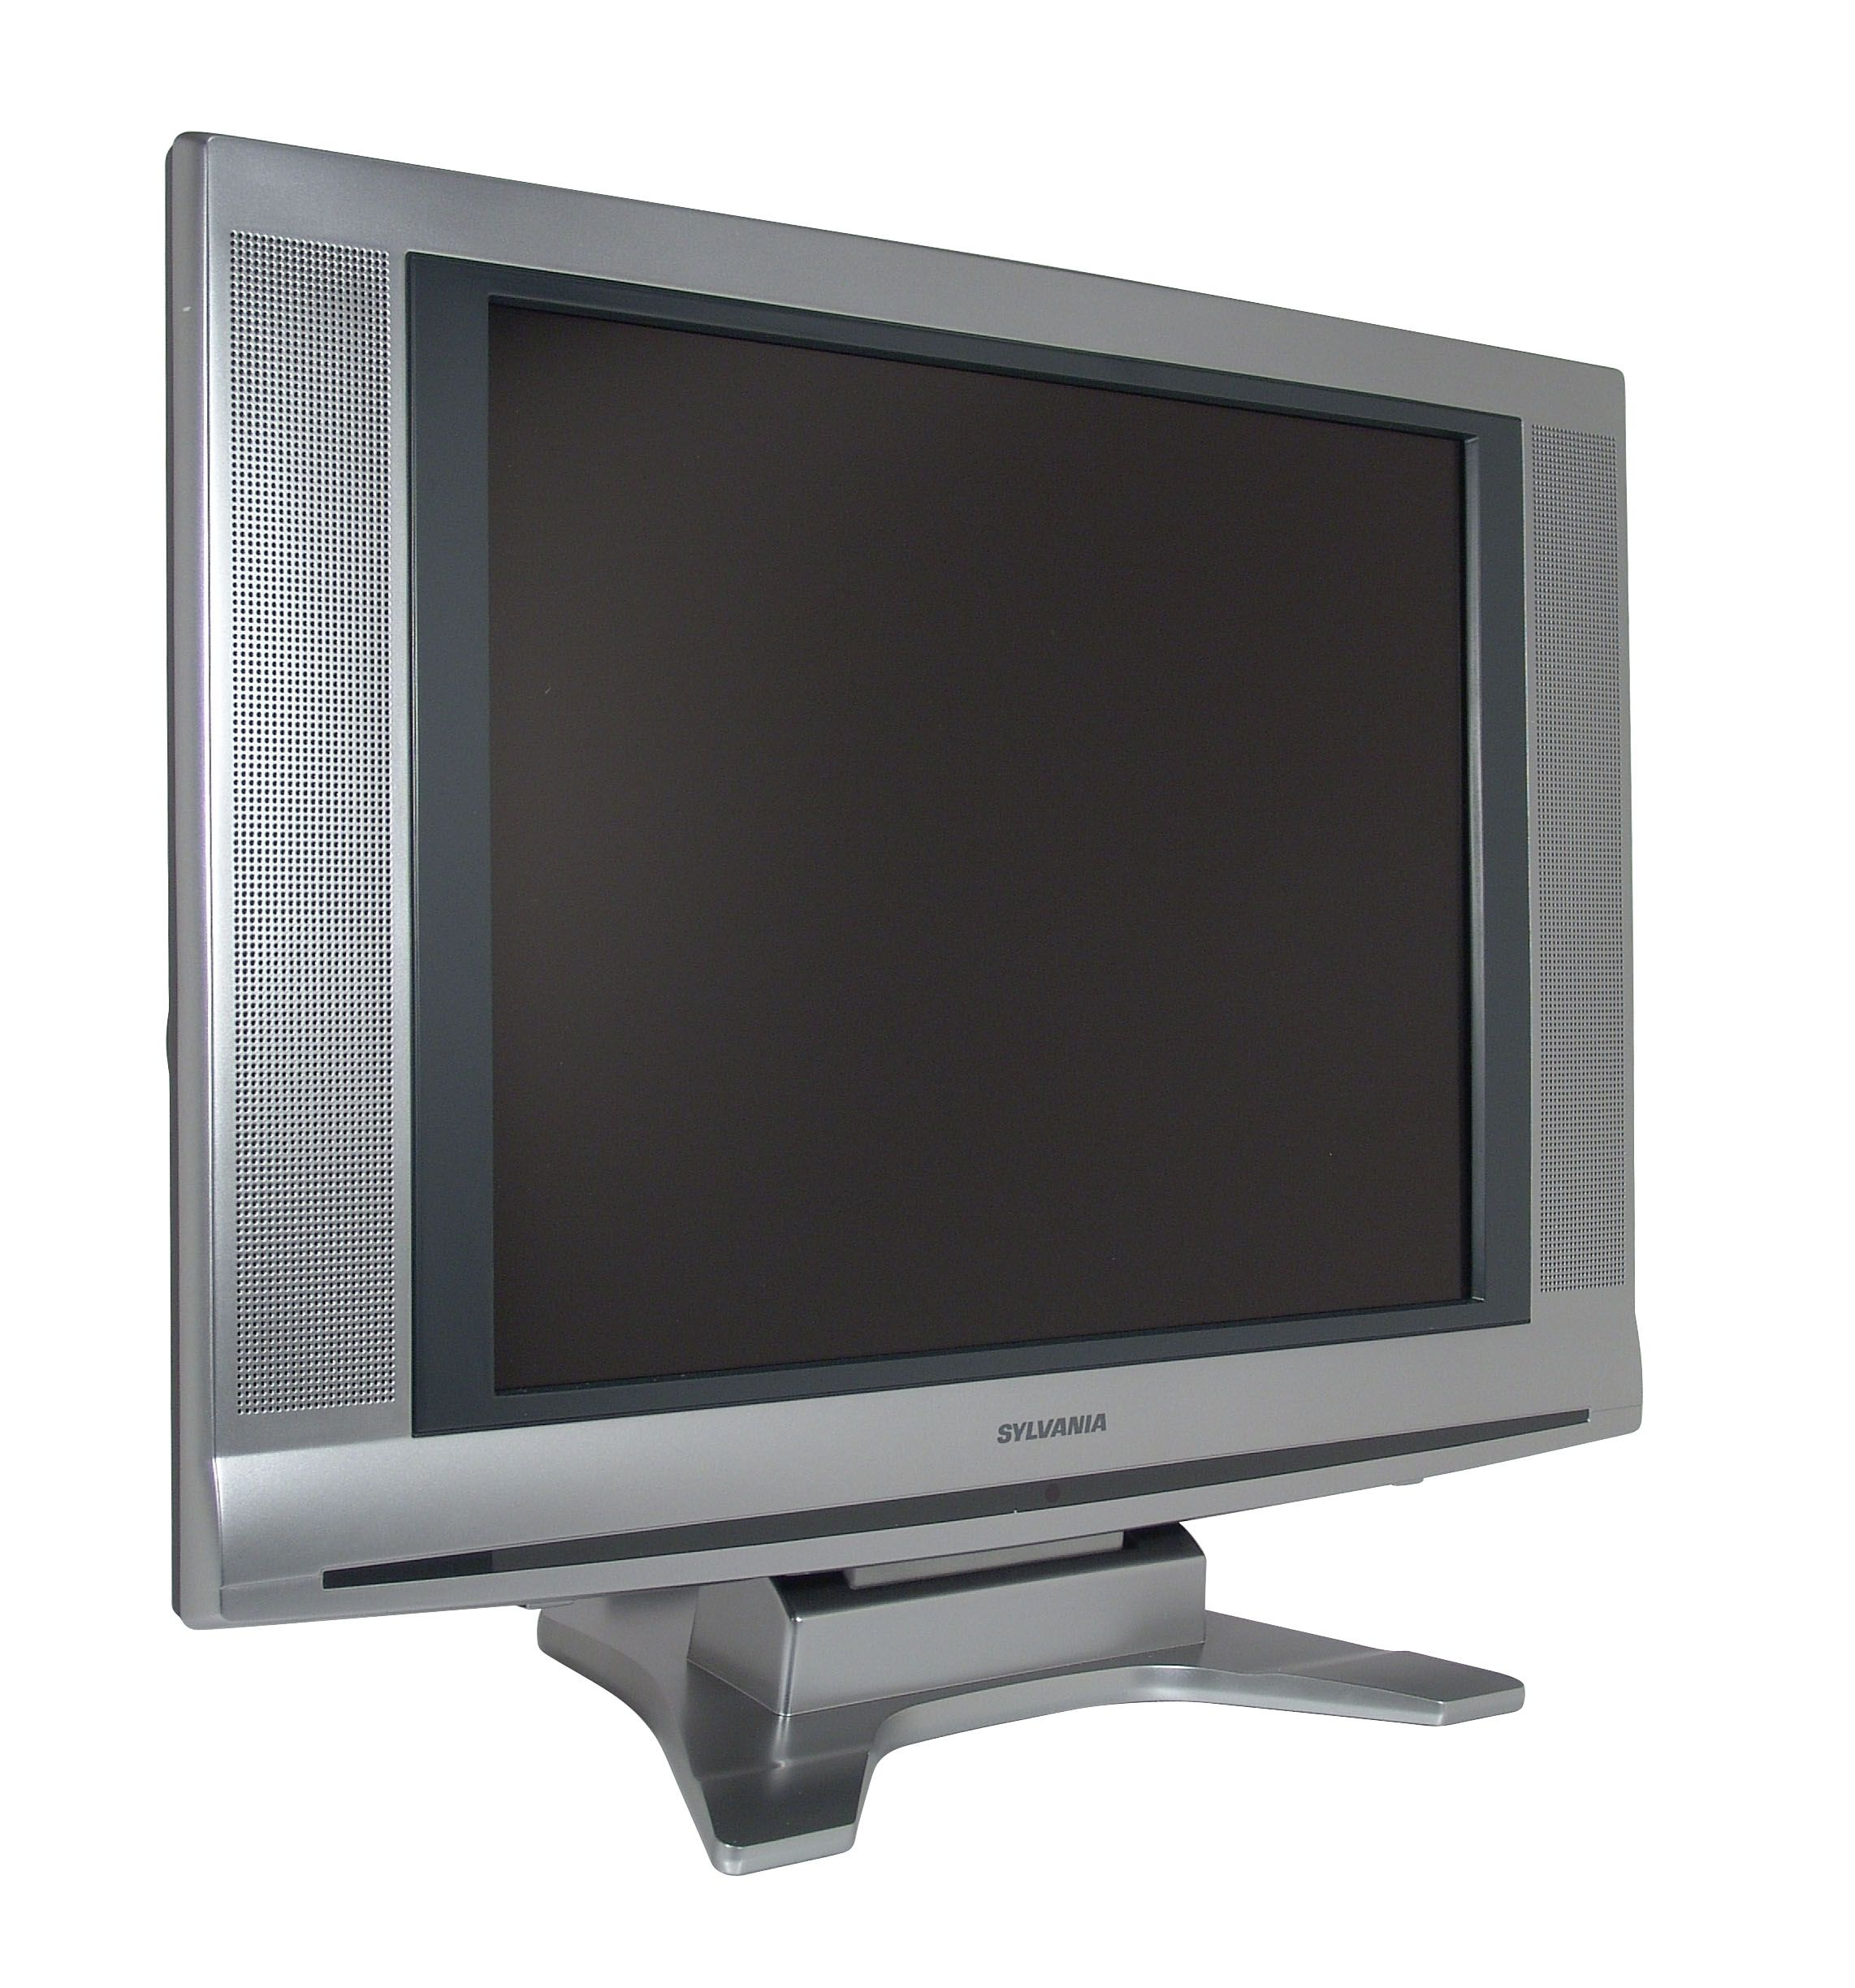 Sylvania (Refurbished) 20 in. (Diagonal) Class LCD Color TV/ED Monitor/DVD Player Combo